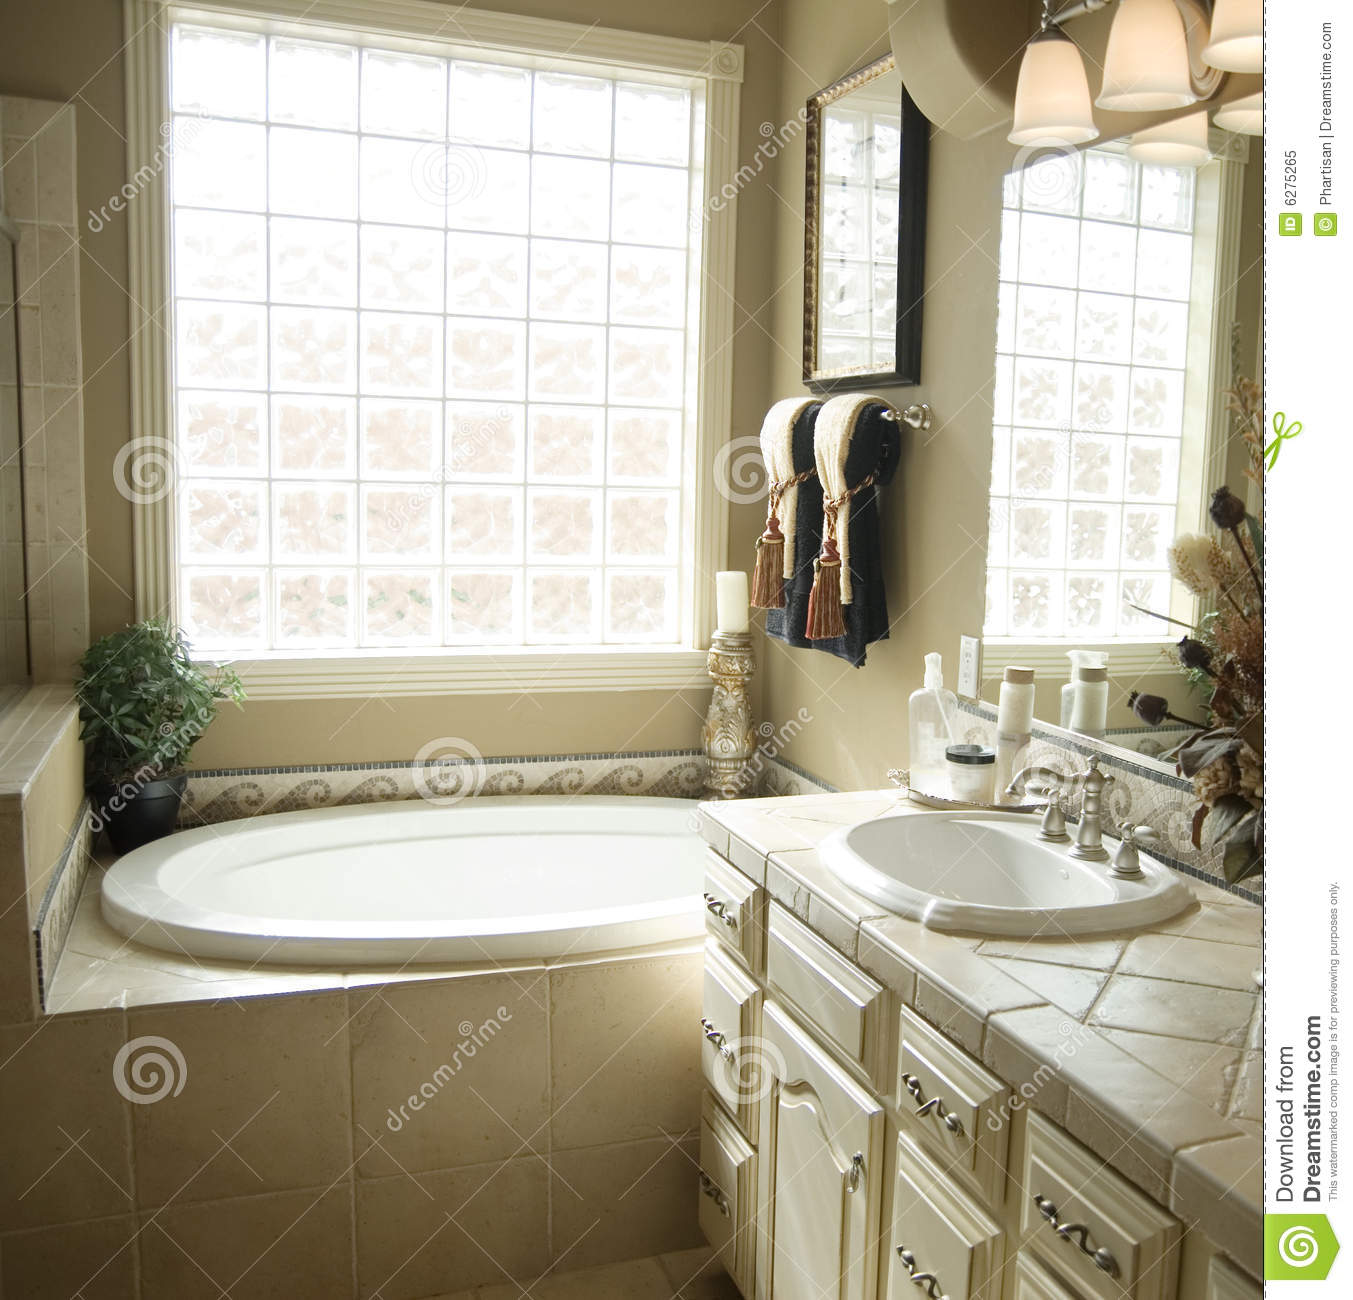 Beautiful bathroom interior design stock image image for 8x12 bathroom ideas